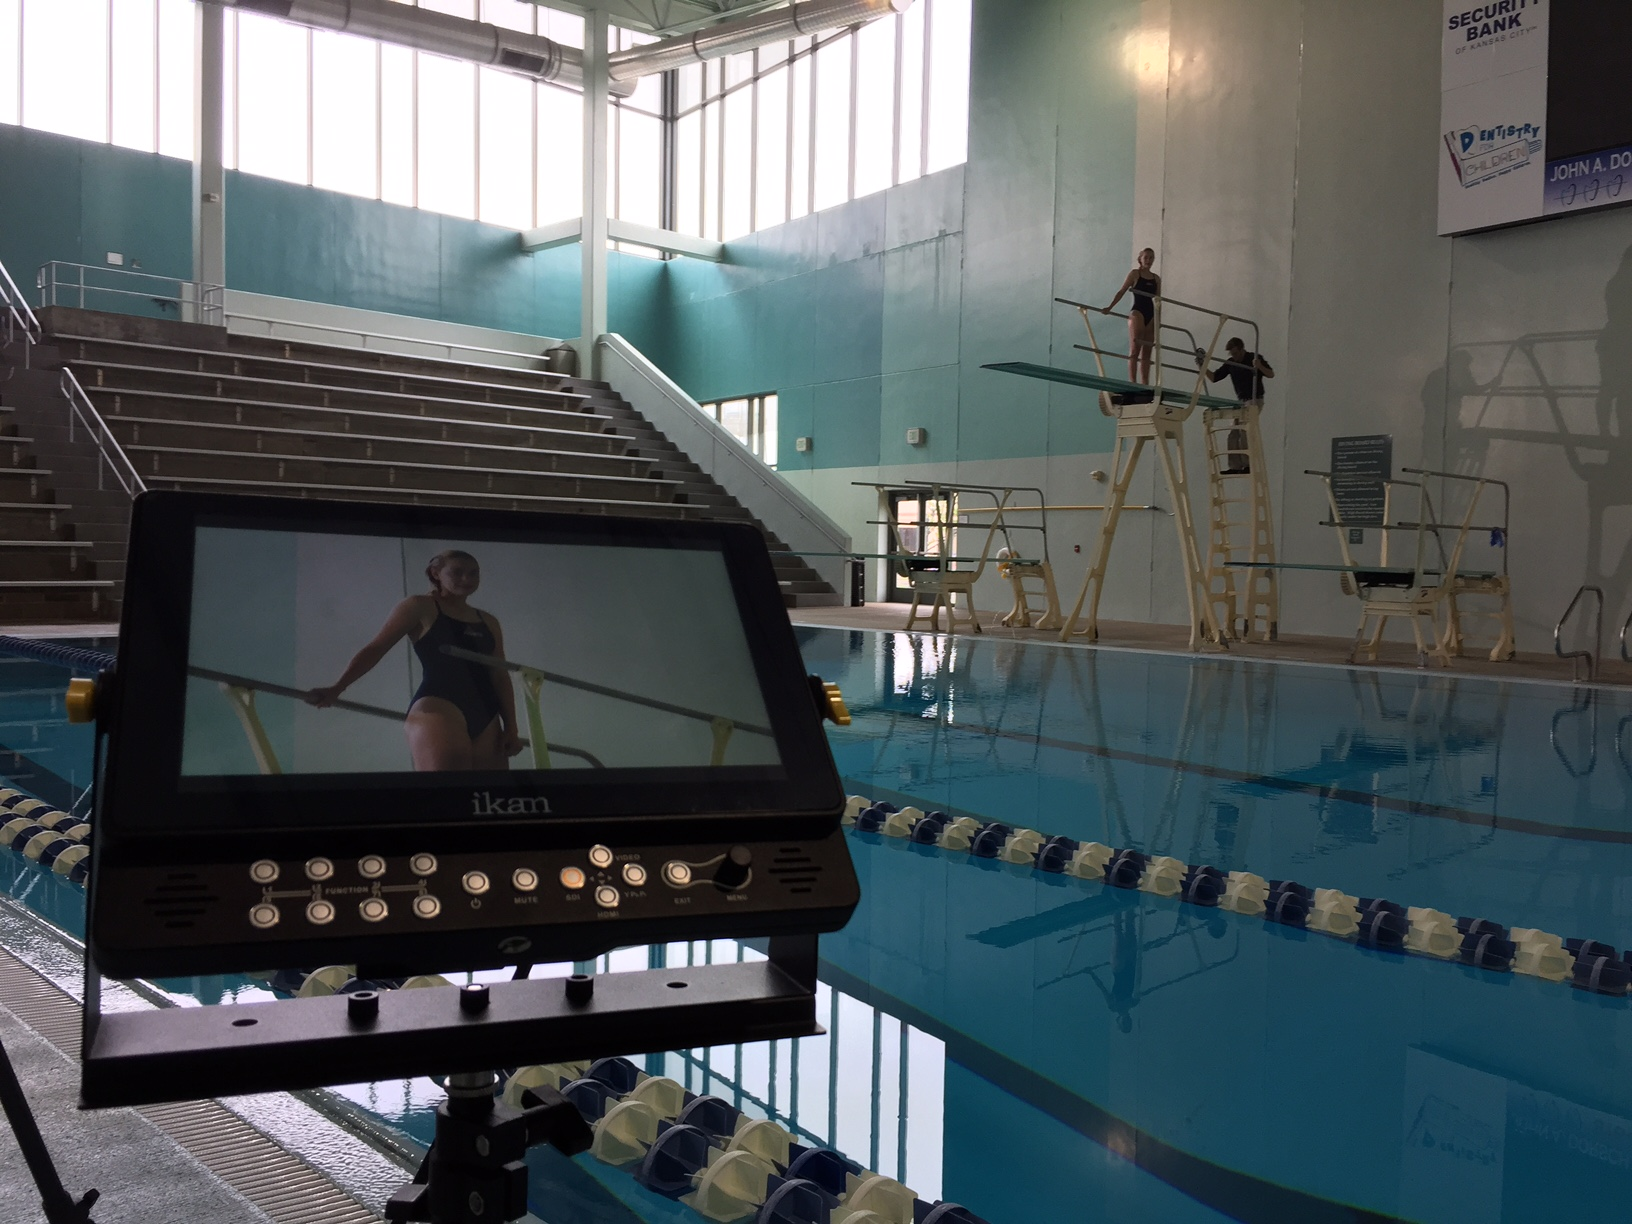 bringing a monitor on a shoot is key, so we or our clients can decide whether our project is top notch or not